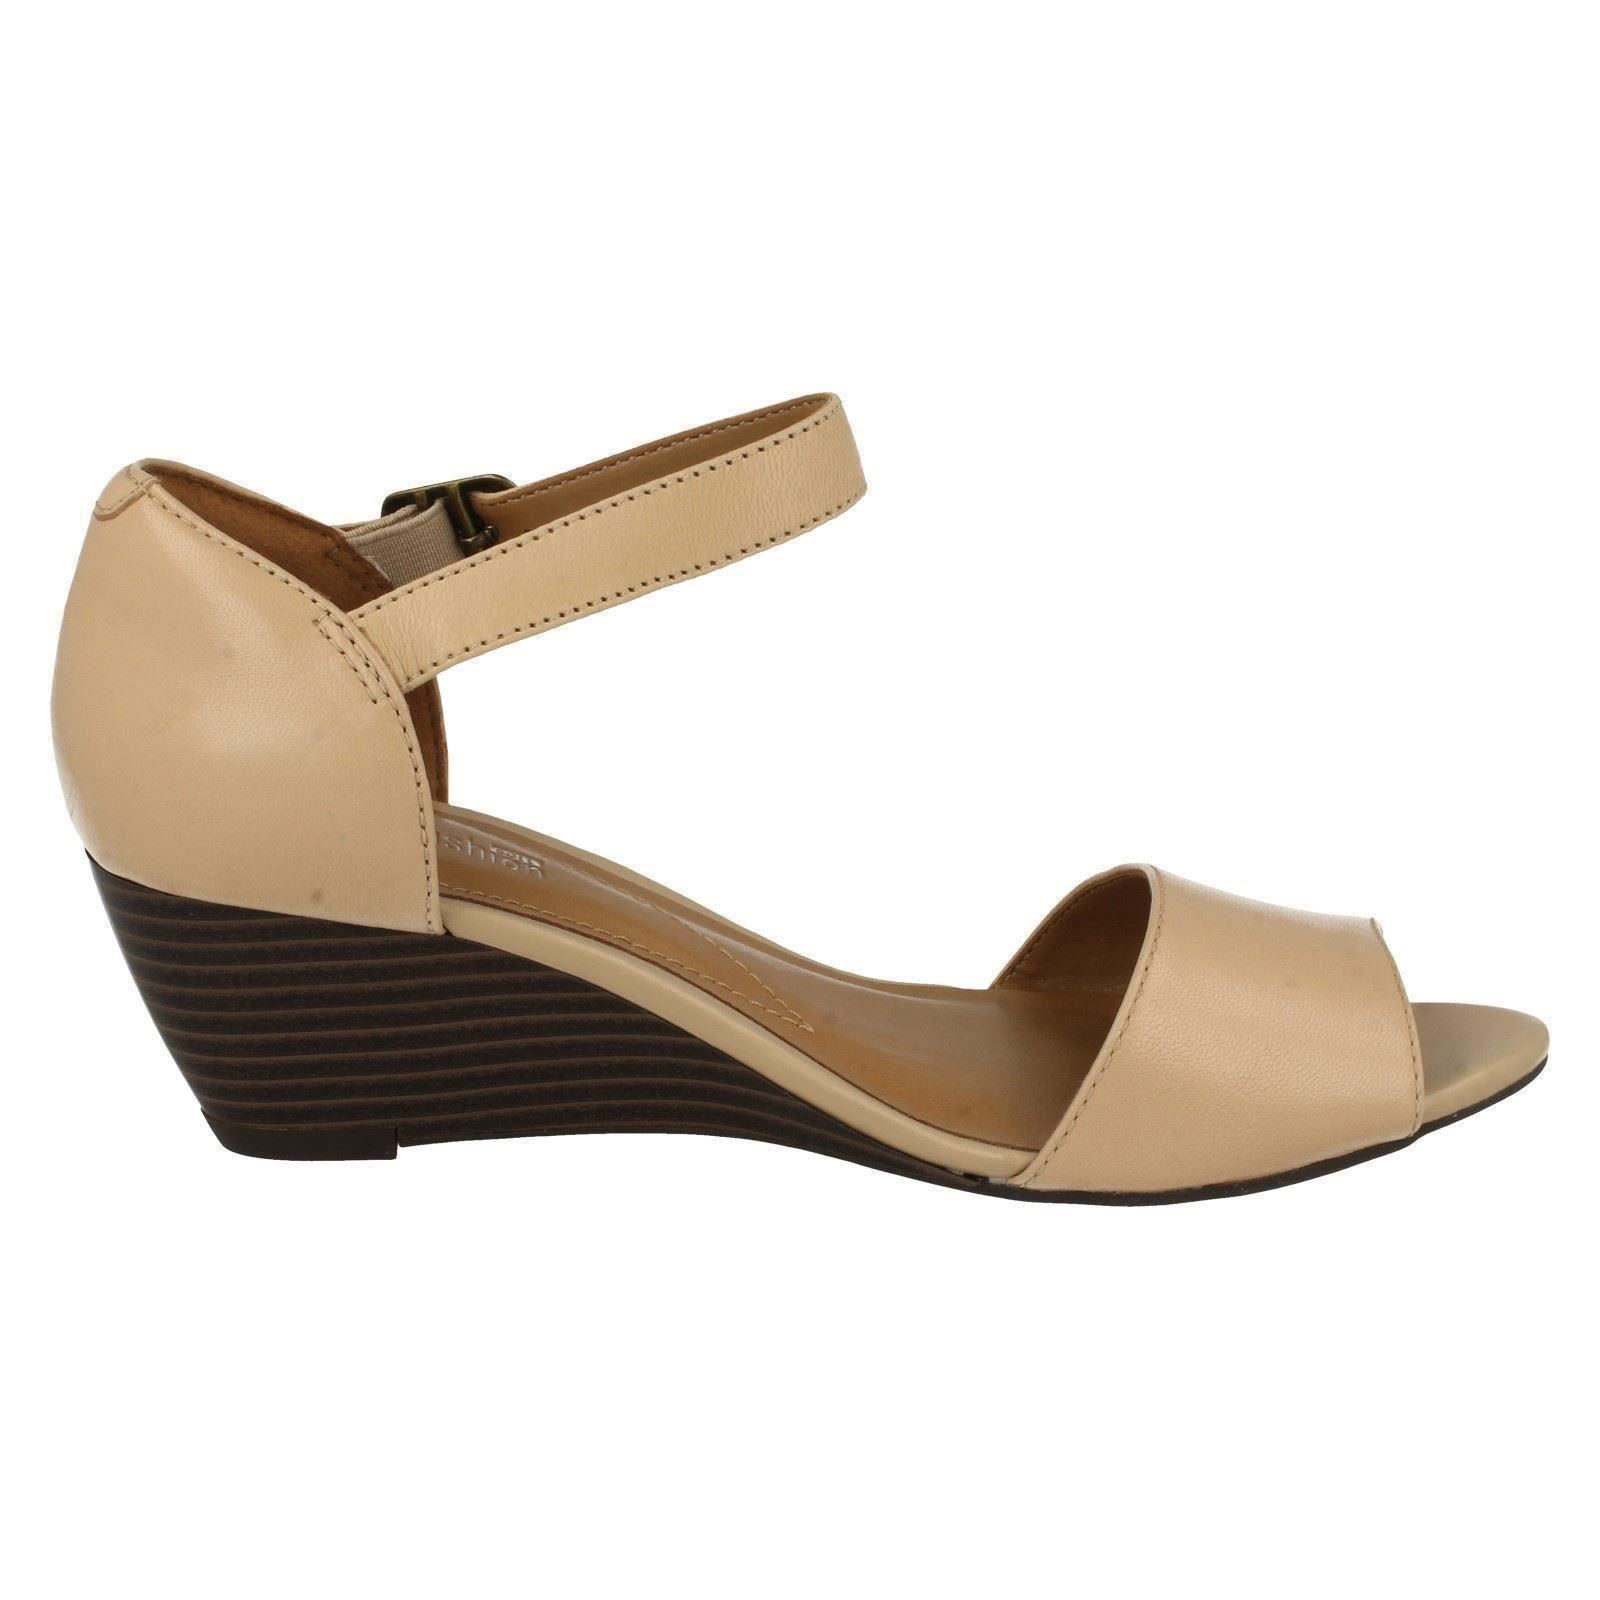 be0ff1941024 Ladies-Clarks-Smart-Wedge-Sandals-039-Brielle-Drive-